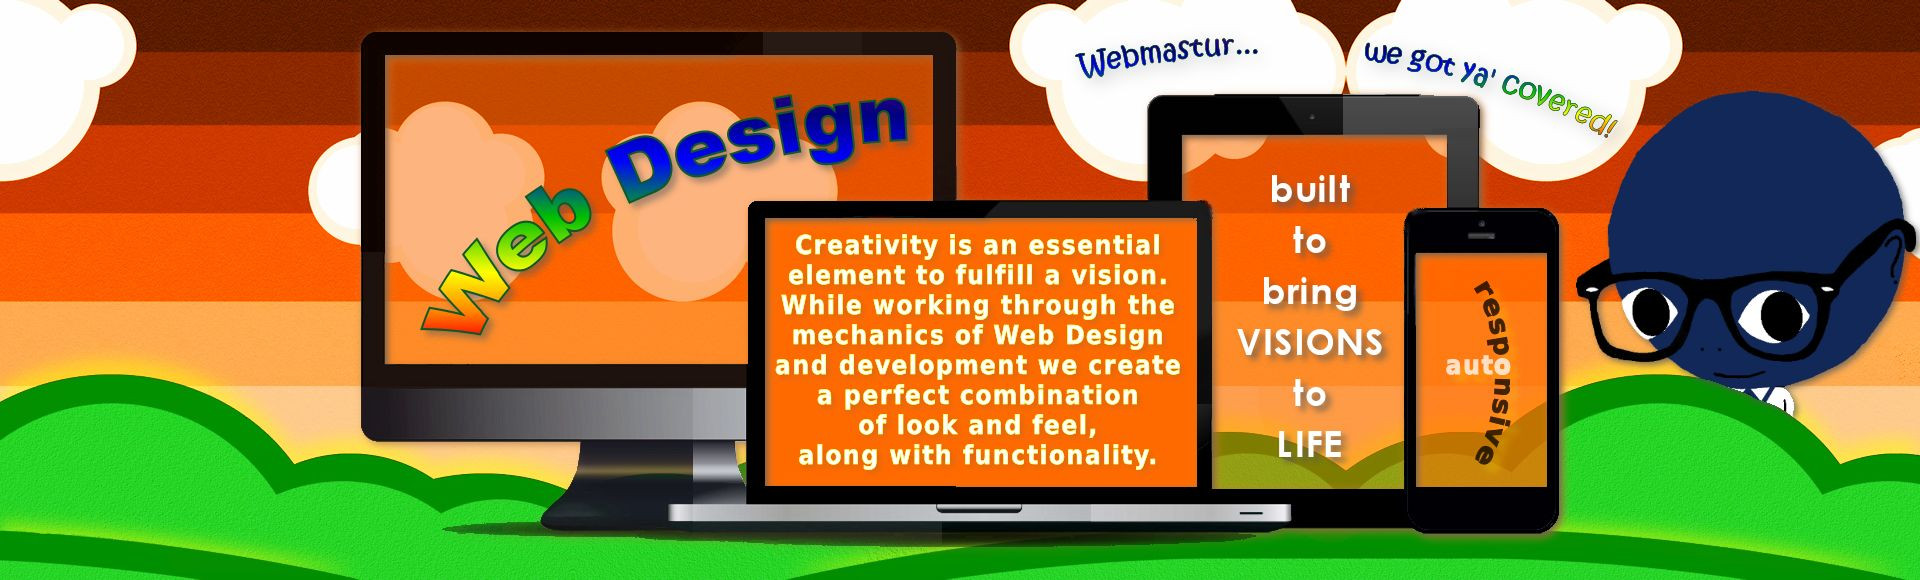 webmastur slide web design